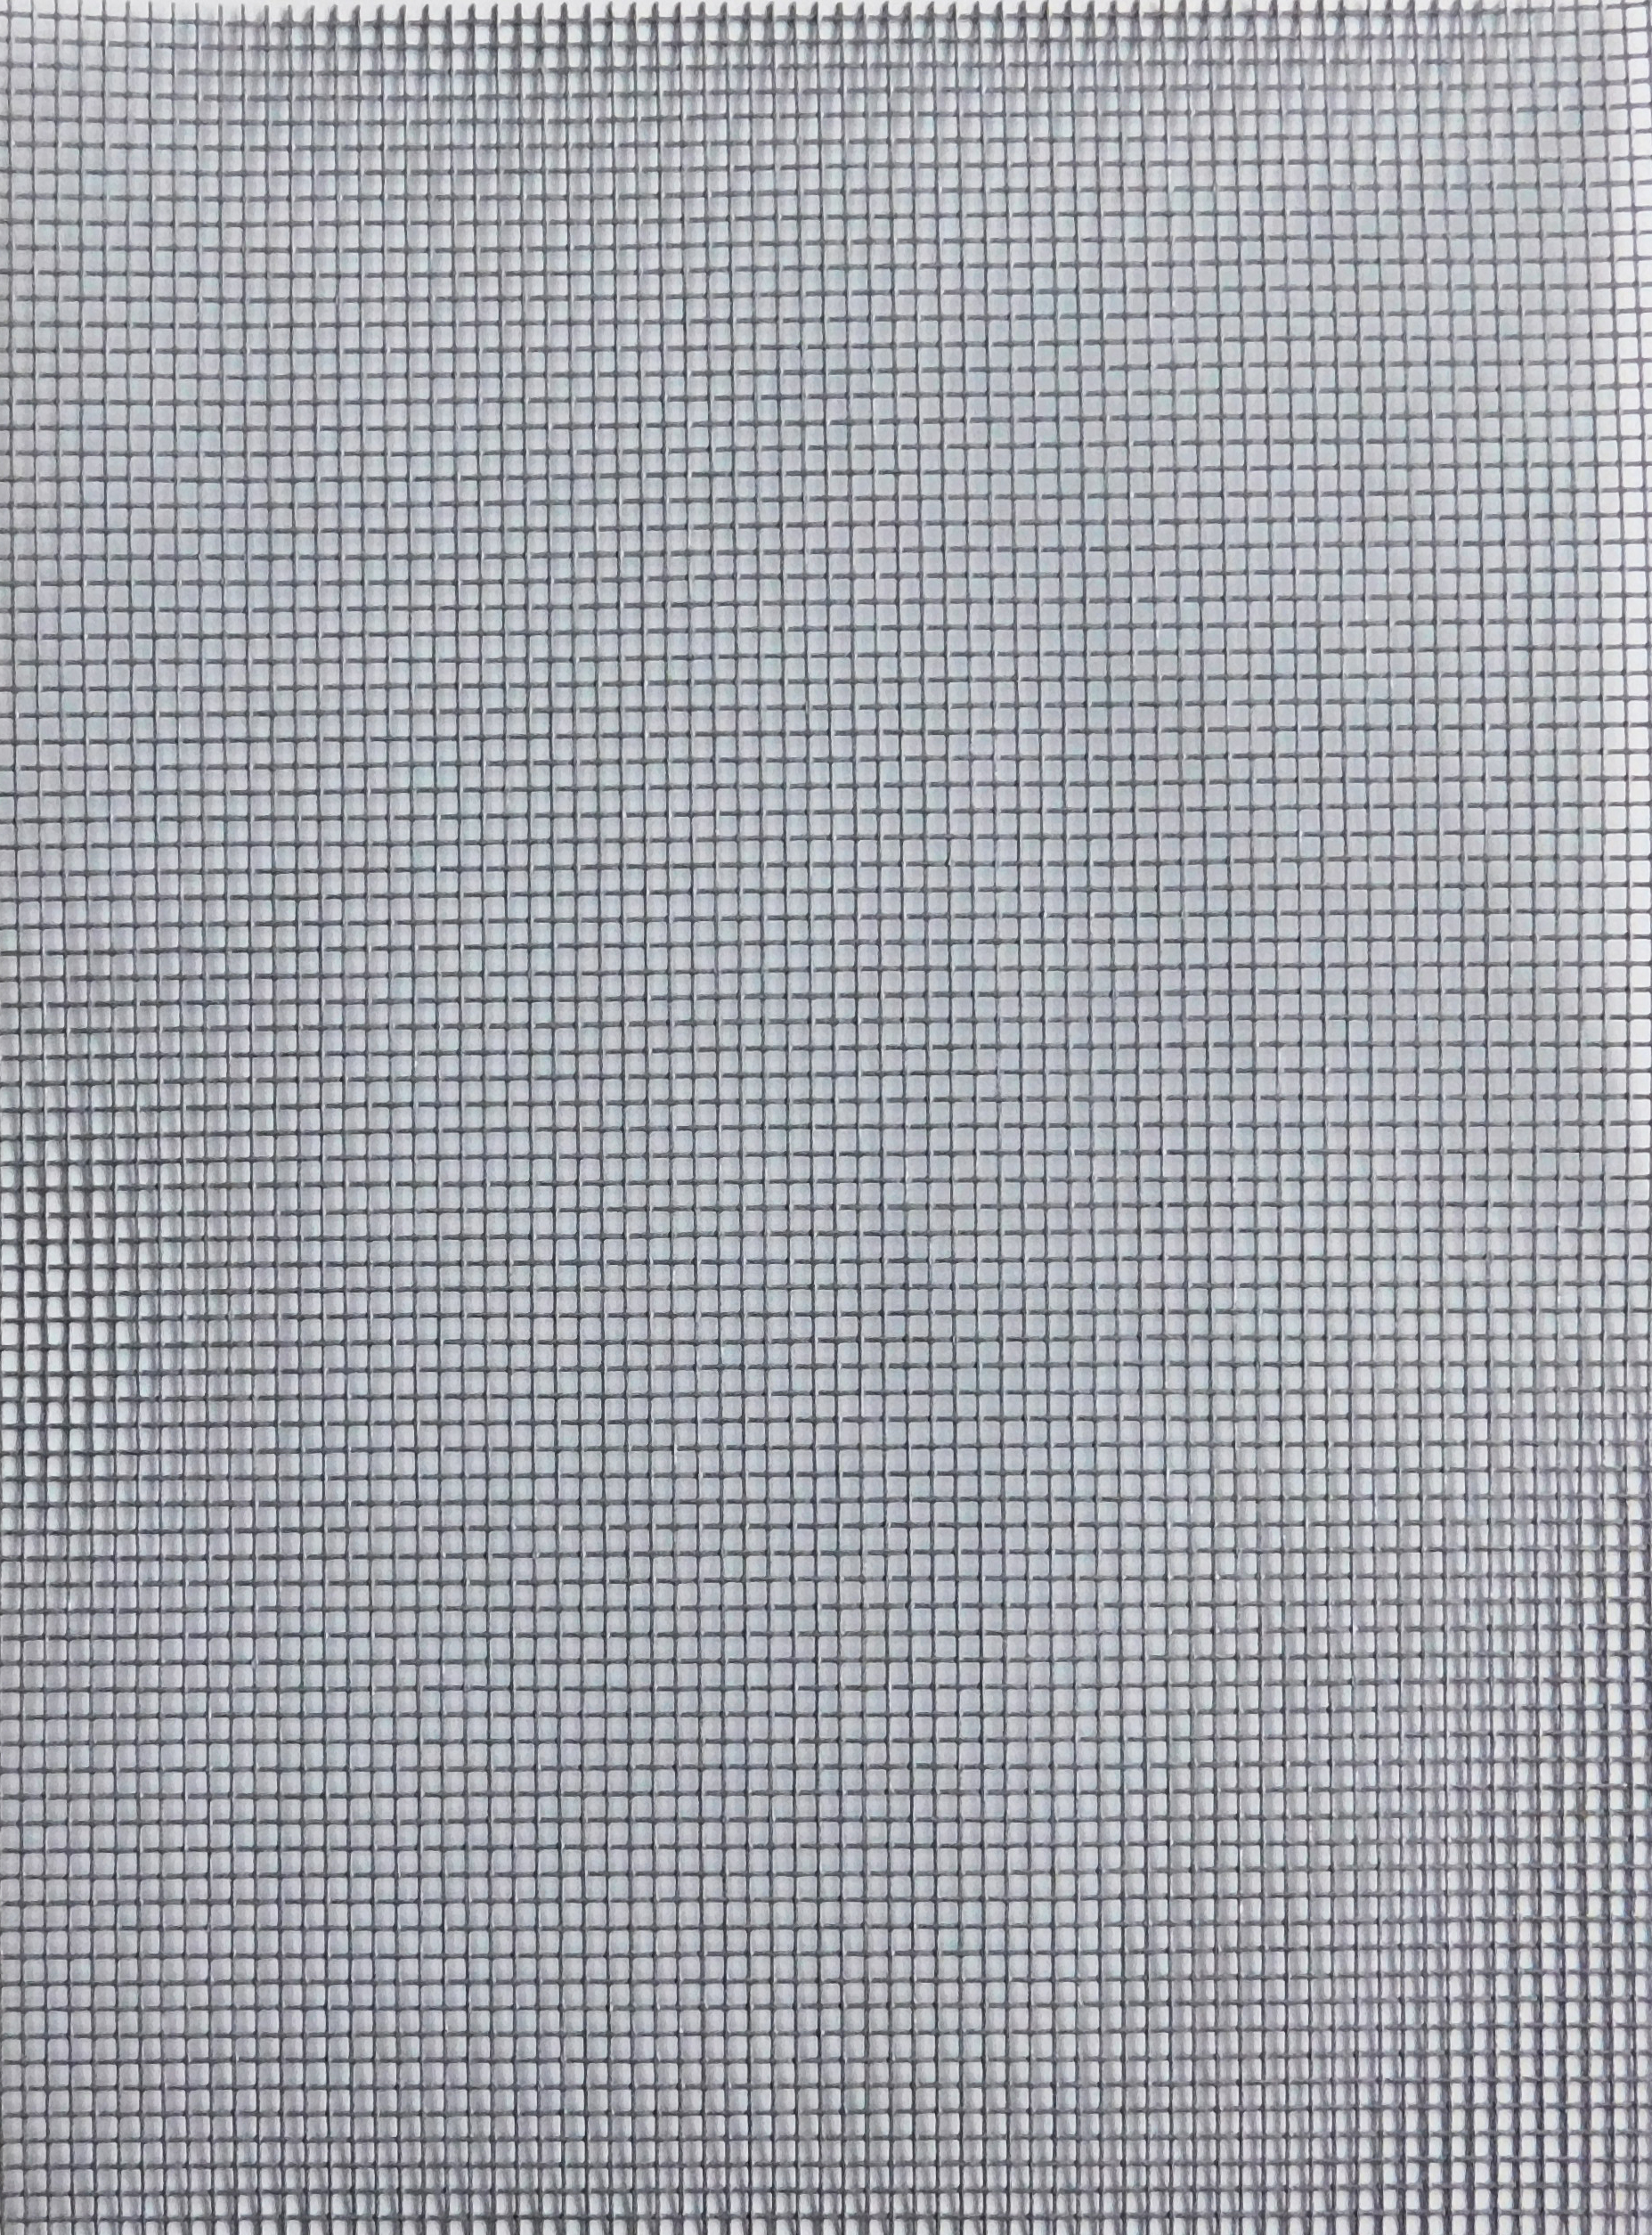 Buy 240 Flyscreen Grey Cassette Blinds With Side Channels